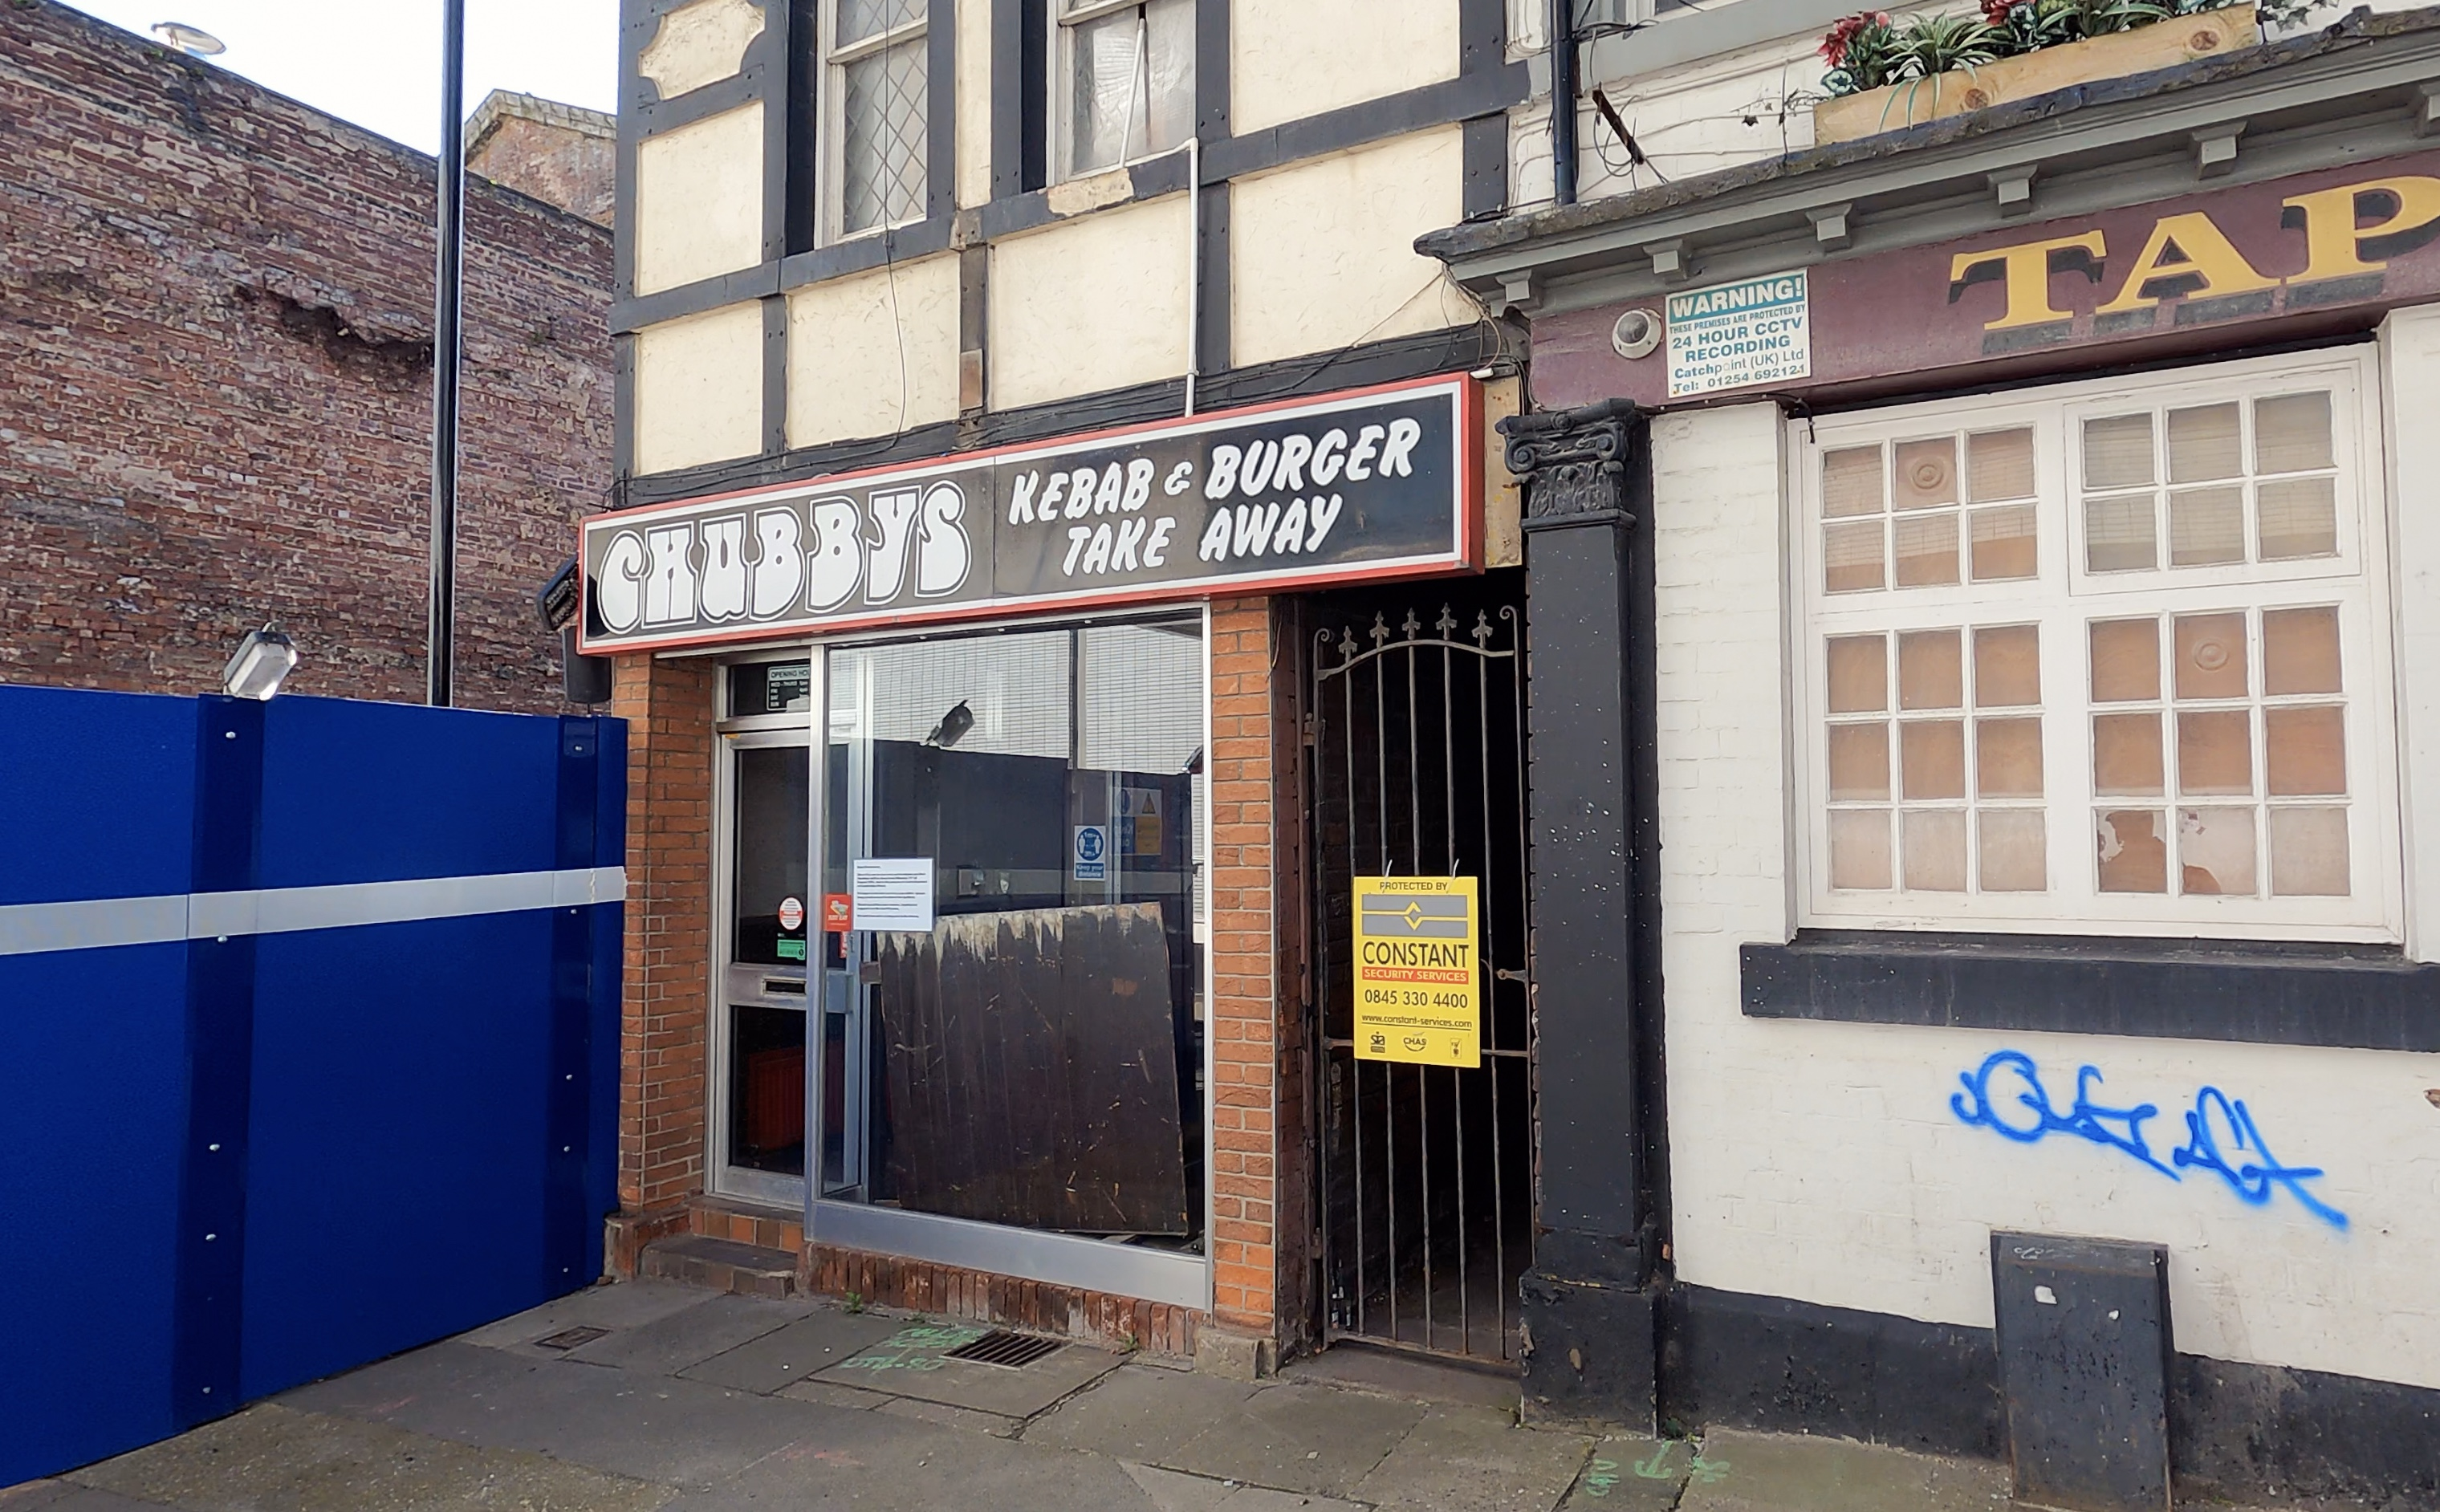 Chubbys Kebab, Burger and Cheesy Chips on Cambridge Street